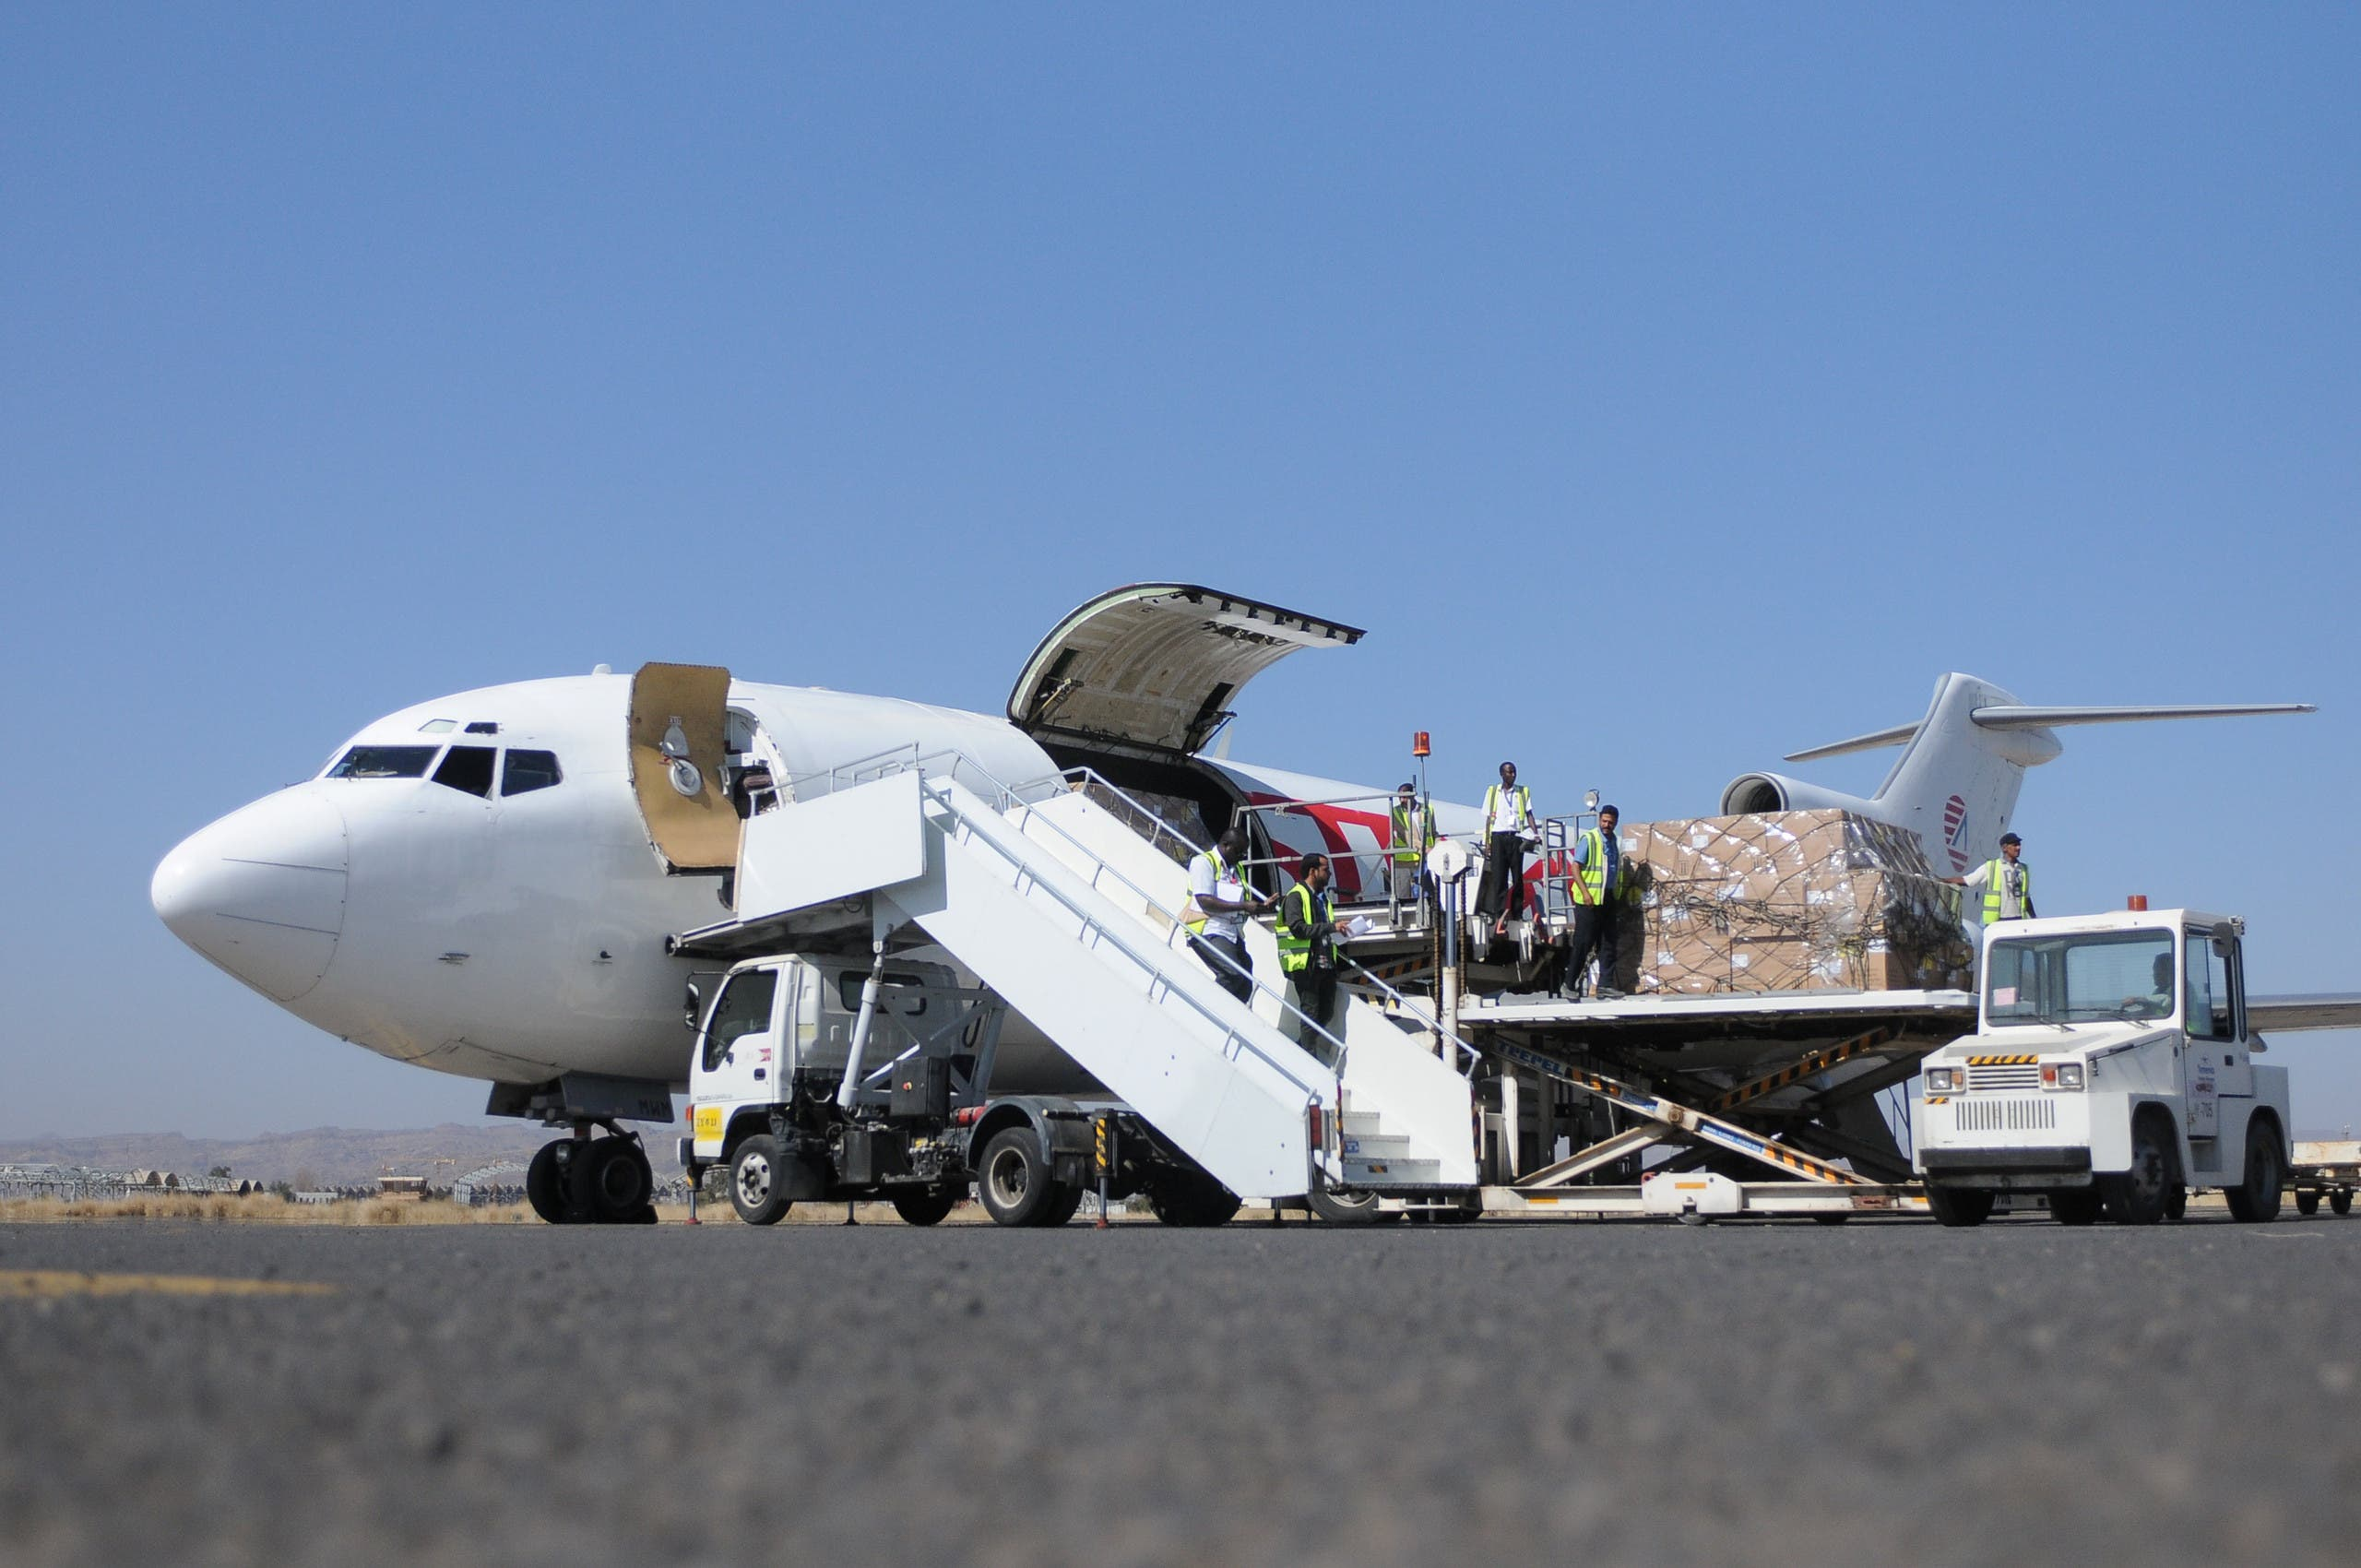 Workers unload aid shipment from a plane at the Sanaa airport, Yemen November 25, 2017. REUTERS/Stringer FOR EDITORIAL USE ONLY. NO RESALES. NO ARCHIVES.